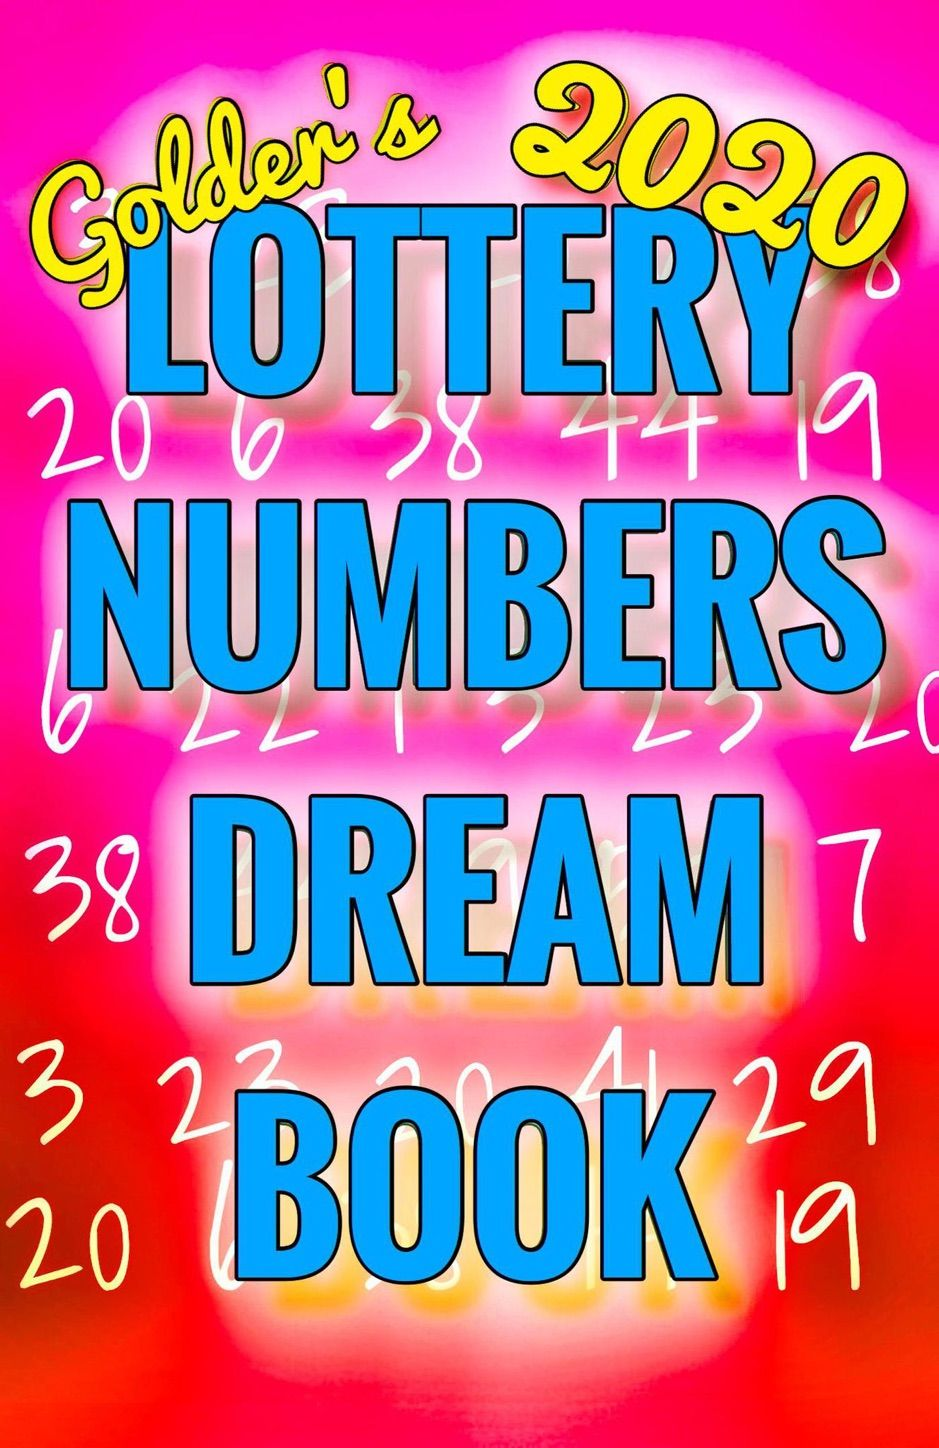 2020 Lottery Numbers Dream Book Spon Numbers Dream Book Download Ad Dream Book Lottery Numbers Lottery